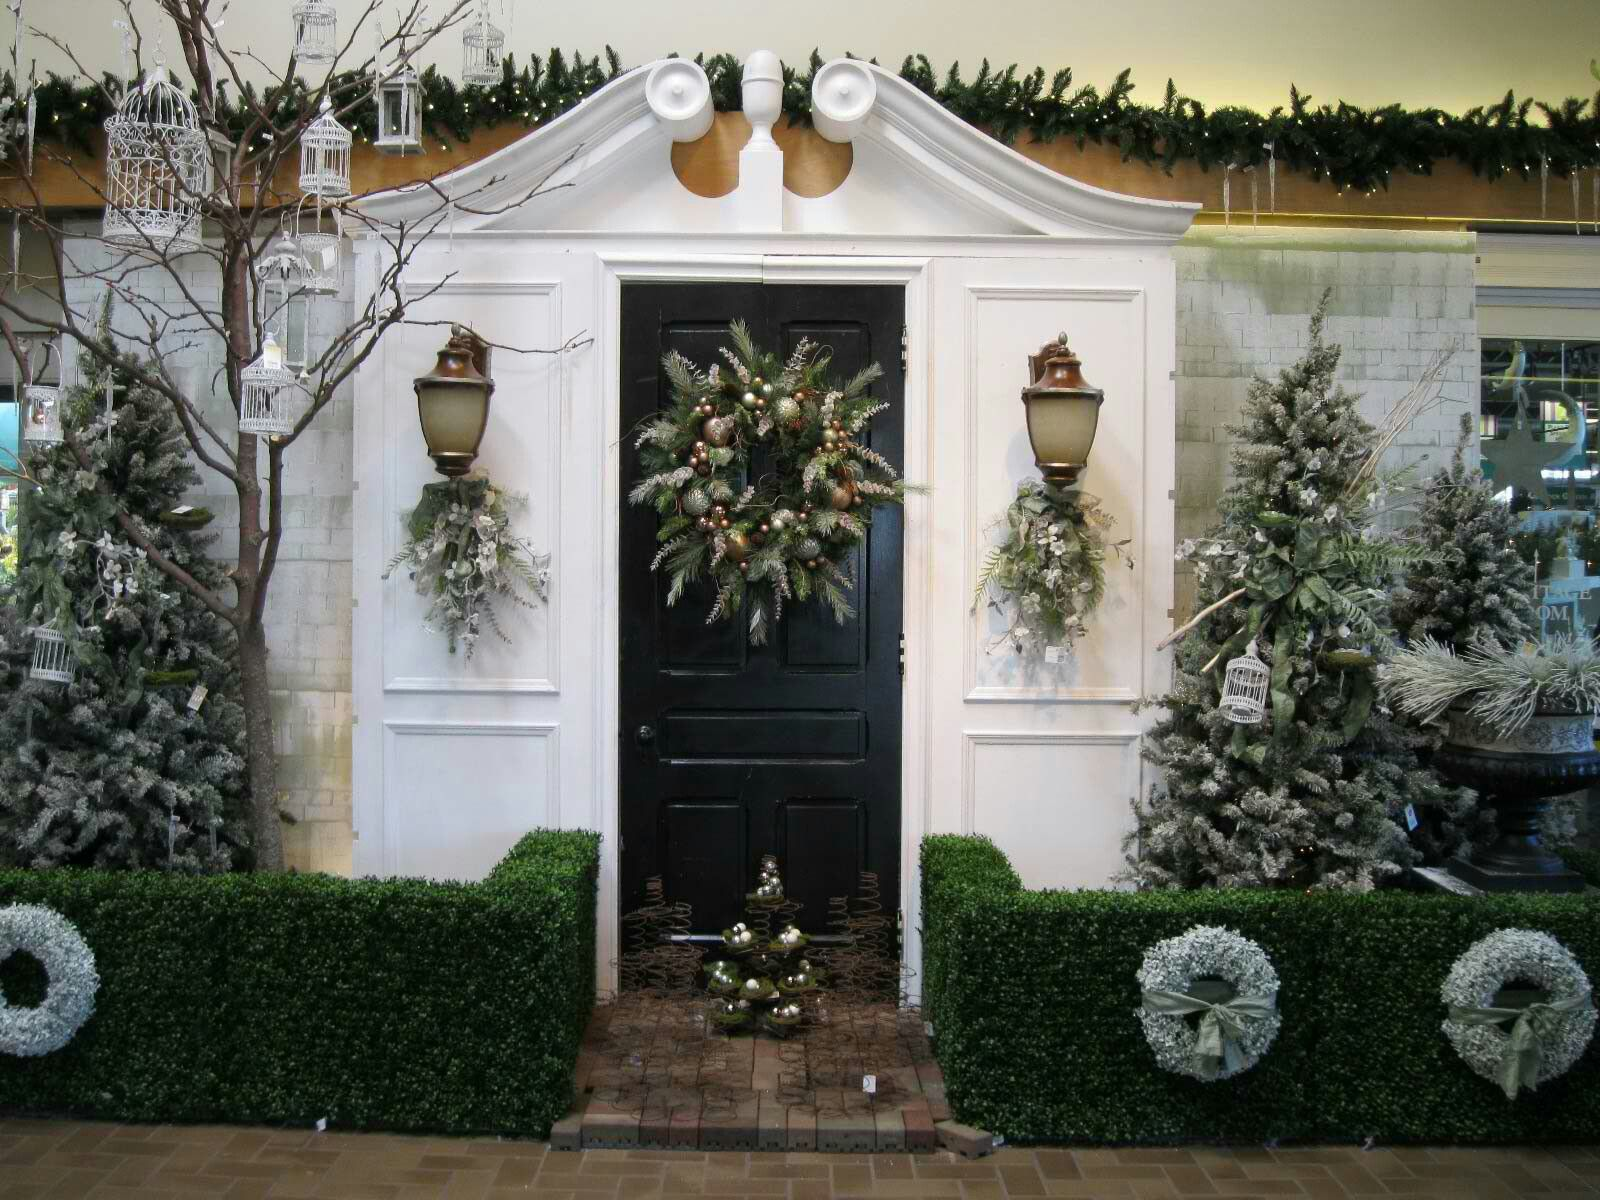 Pin By Lisa Allyn Mcguire On Christmas Decorations Outdoor Christmas Decorations Christmas Door Decorations Front Door Christmas Decorations